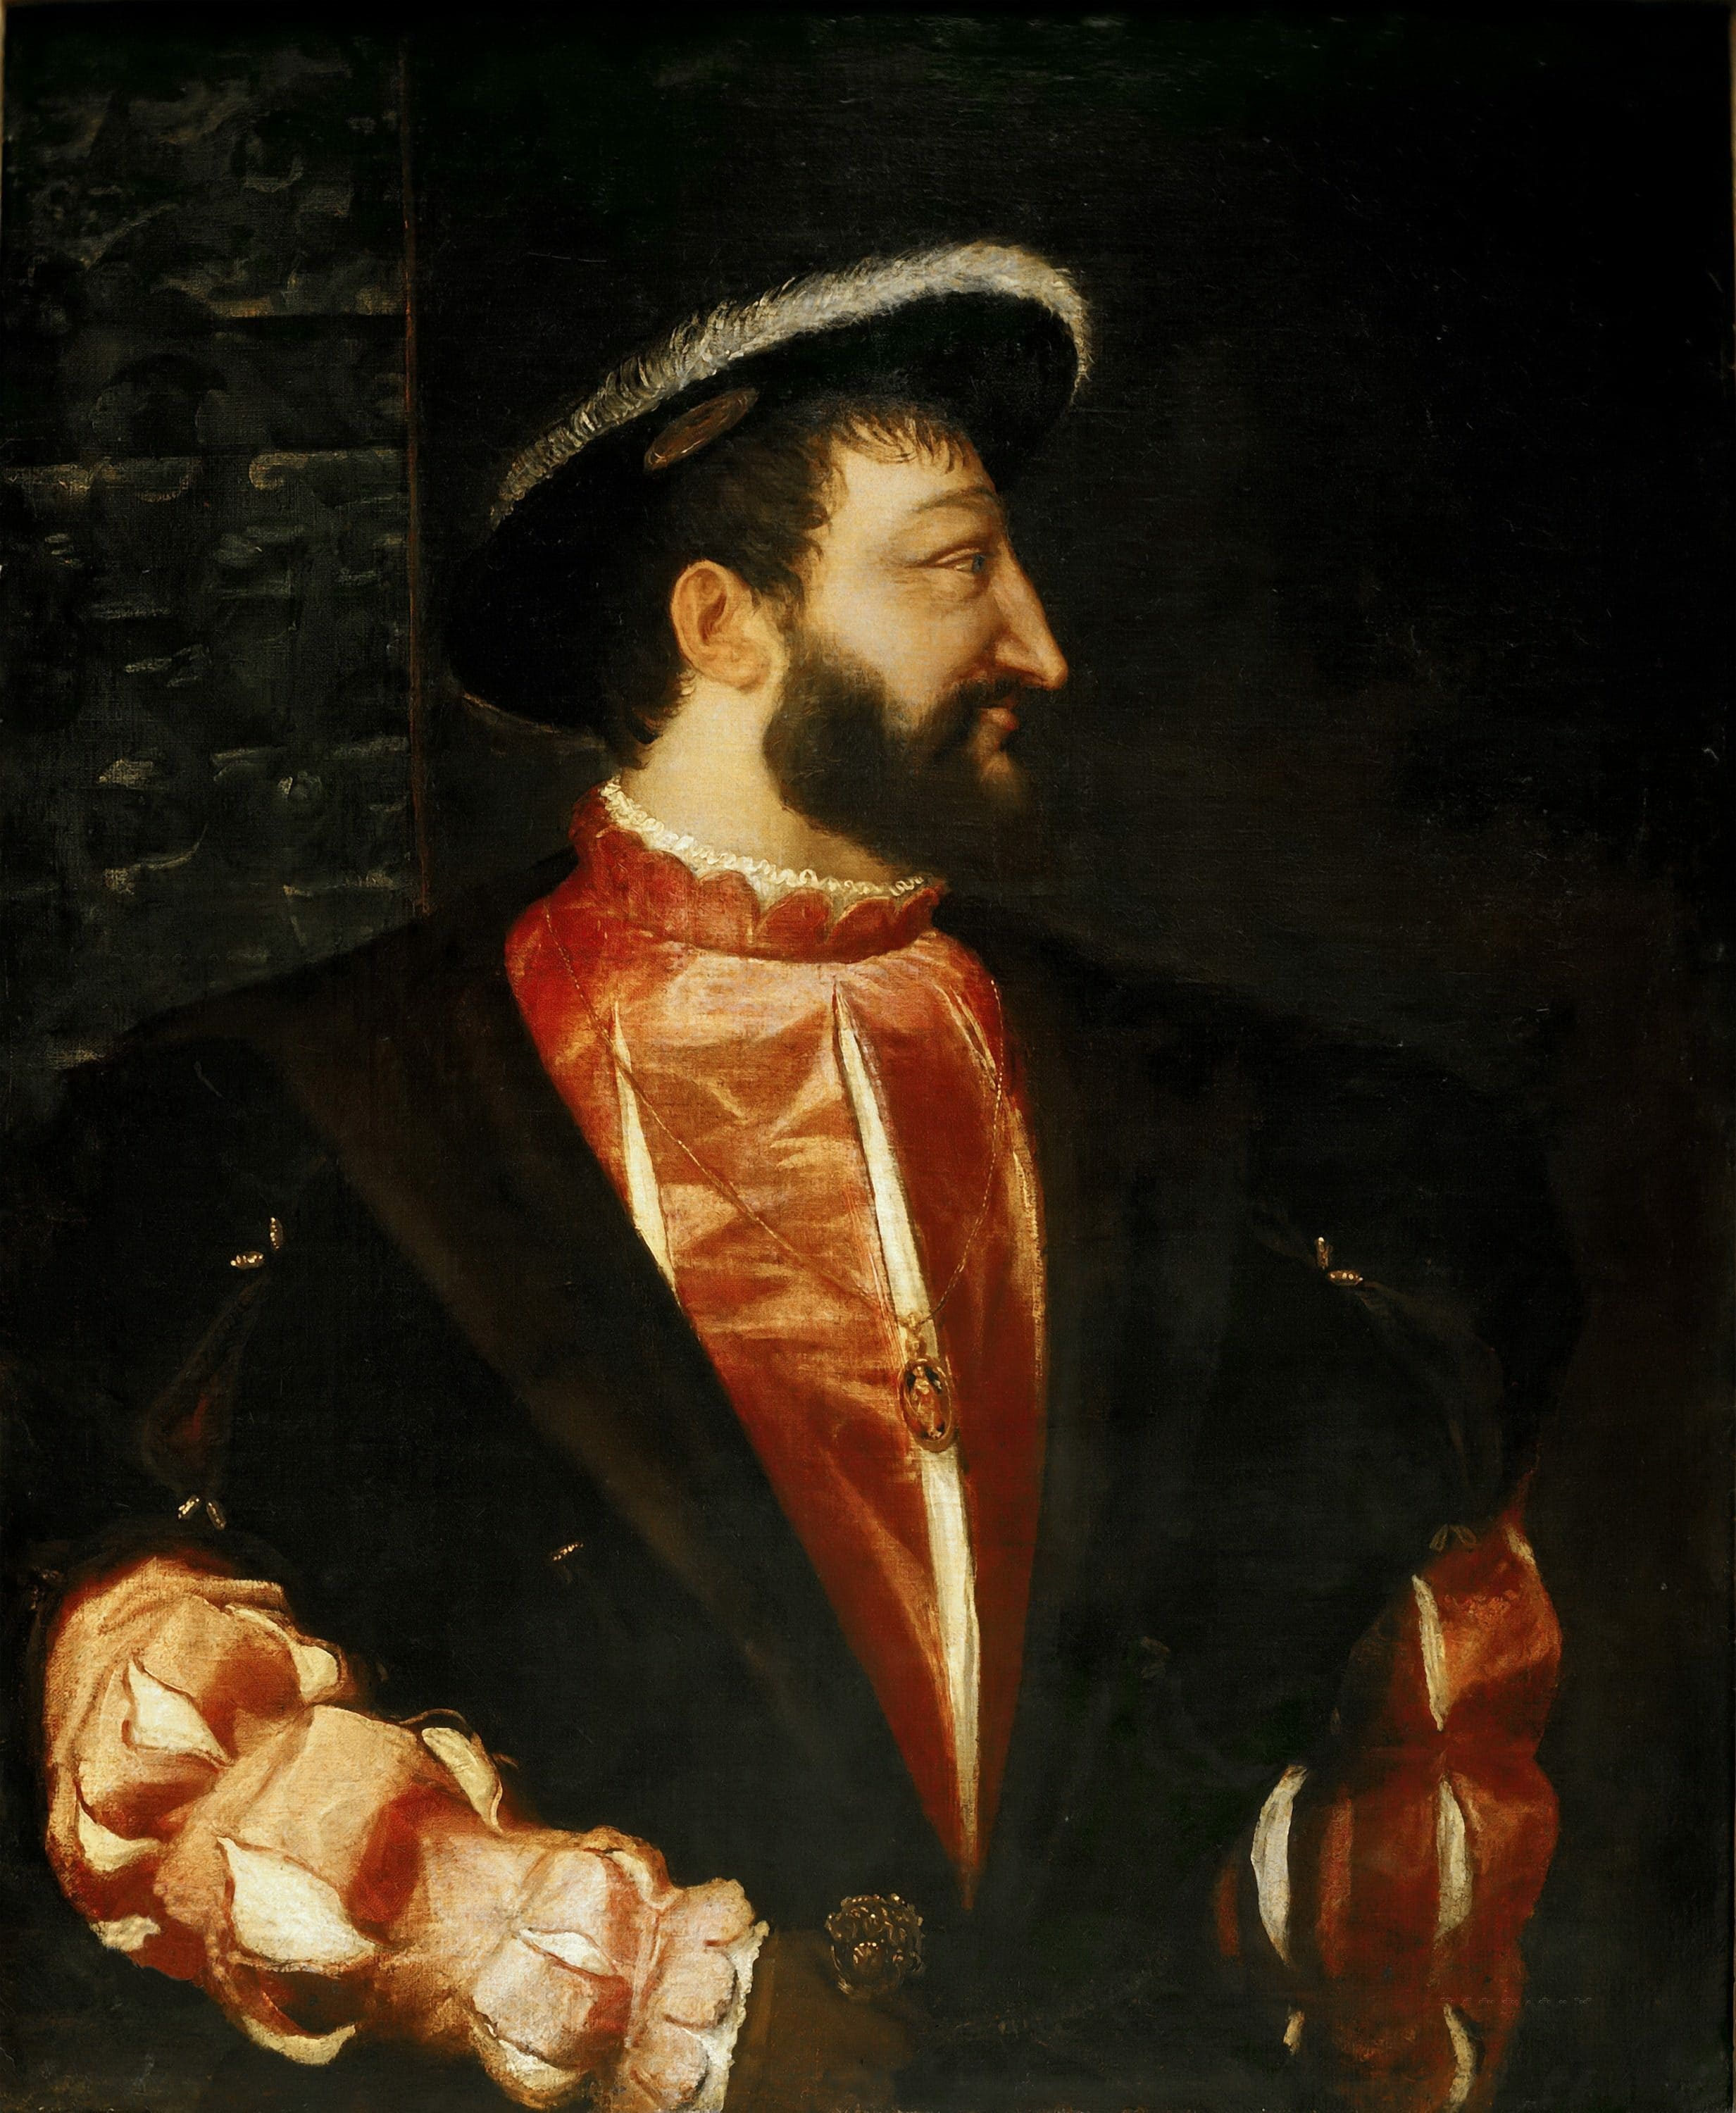 File:Titian francis I of france.jpg